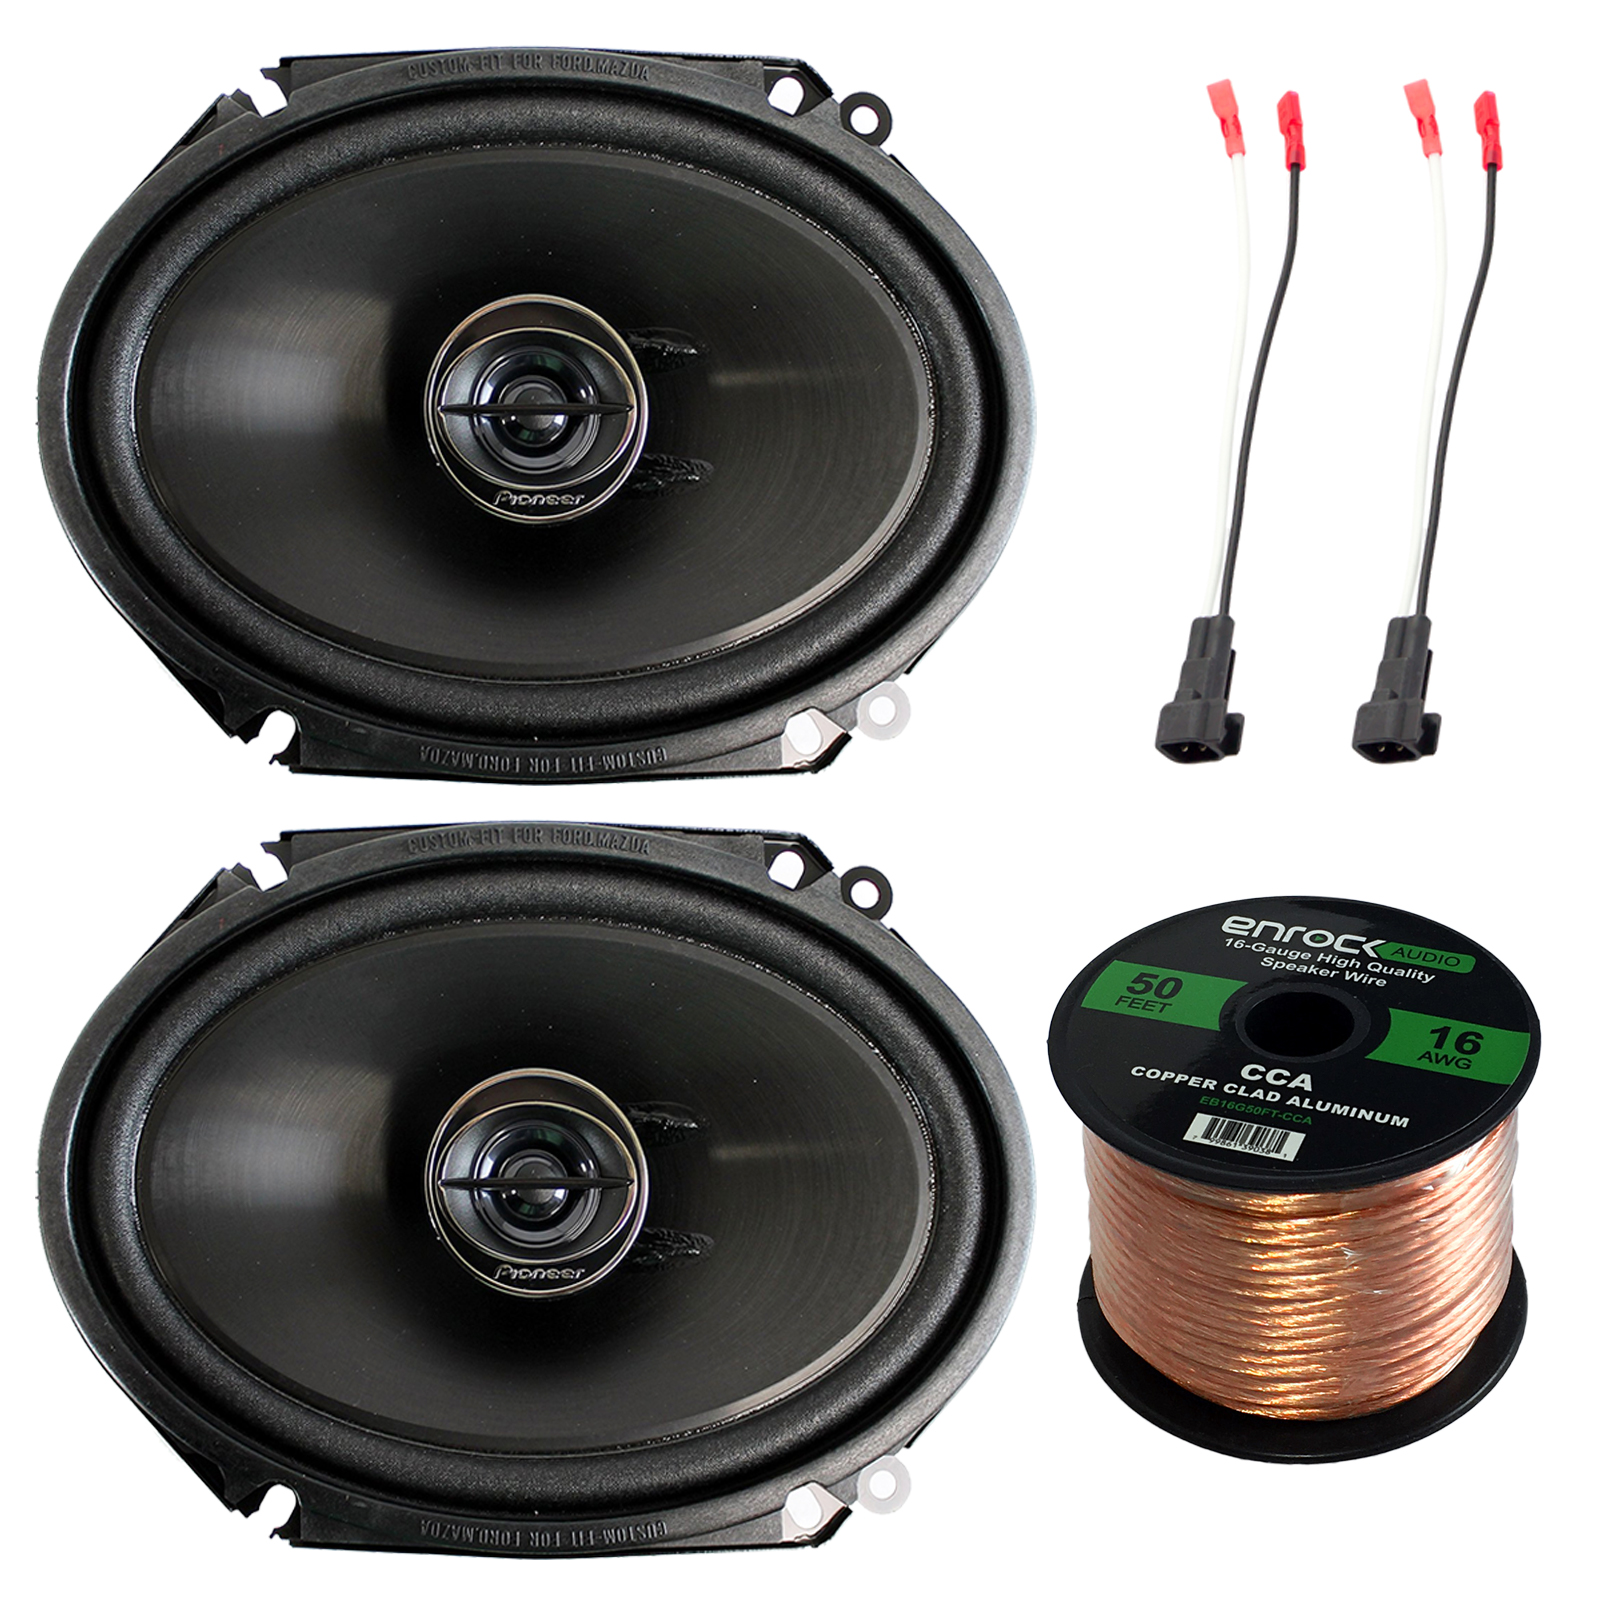 hight resolution of pioneer ts g6845r 250 watt 6 x 8 2 way coaxial car audio speakers pair efdsh98up speaker harness adapter w red bullet for select ford vehicles 1998 up